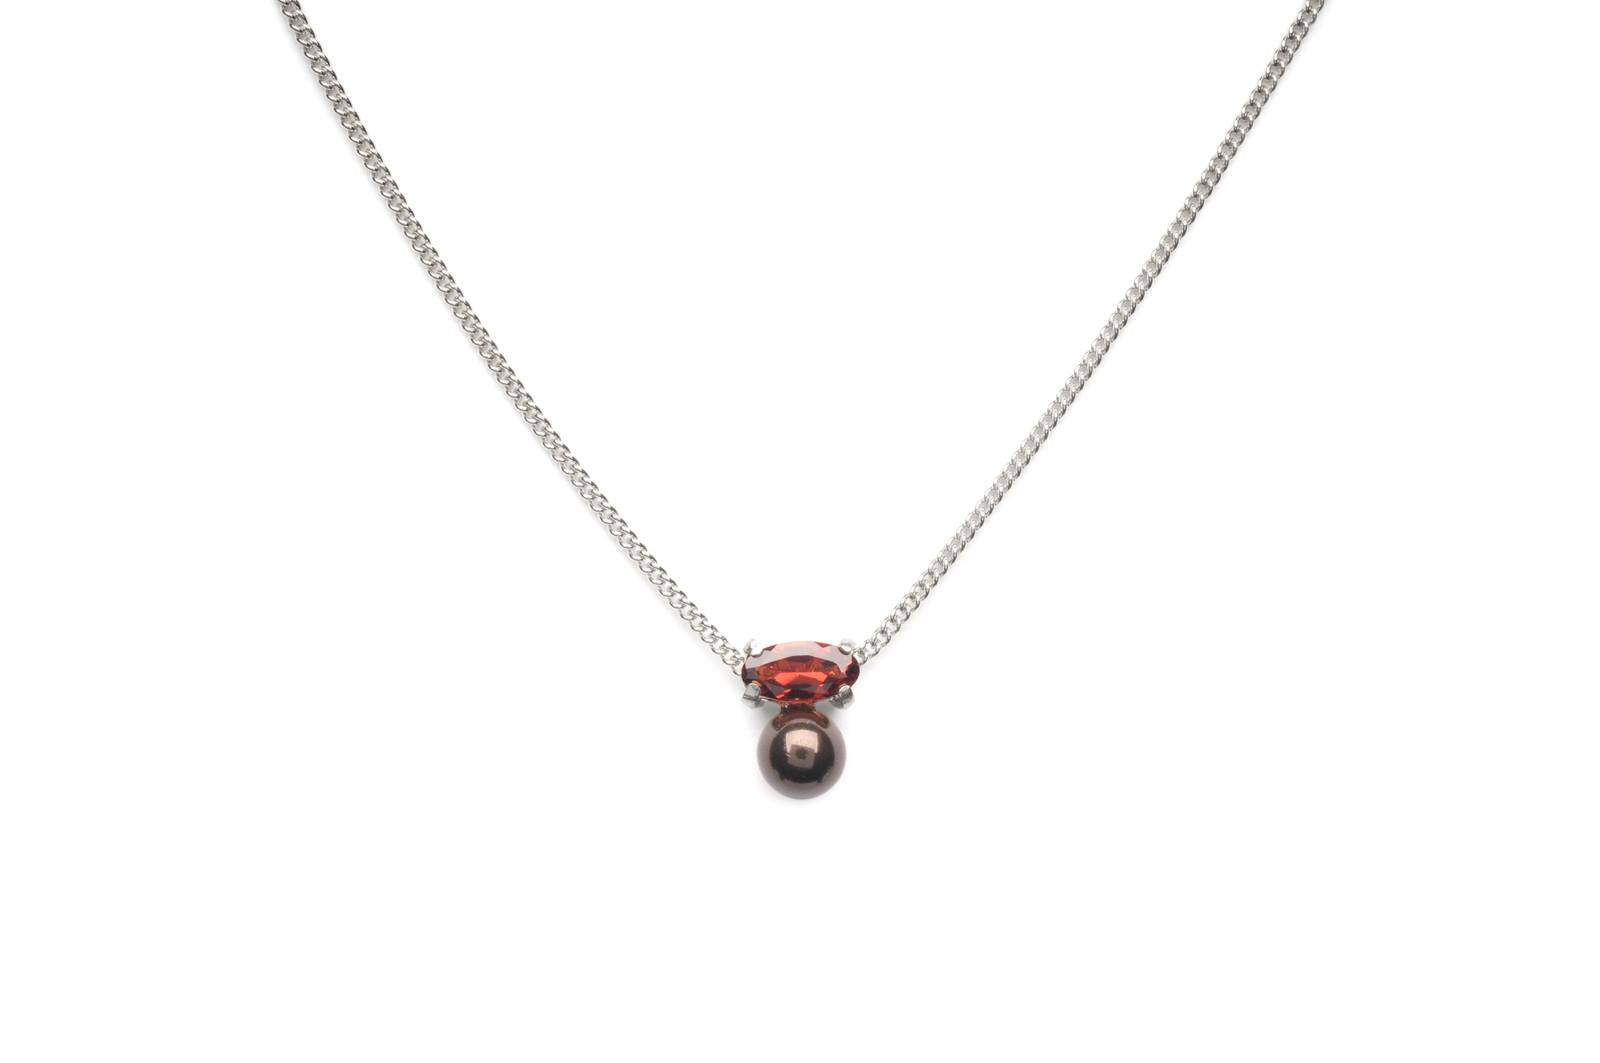 Wouters & Hendrix - necklace with granate red and grey pearl silver or gold plated silver